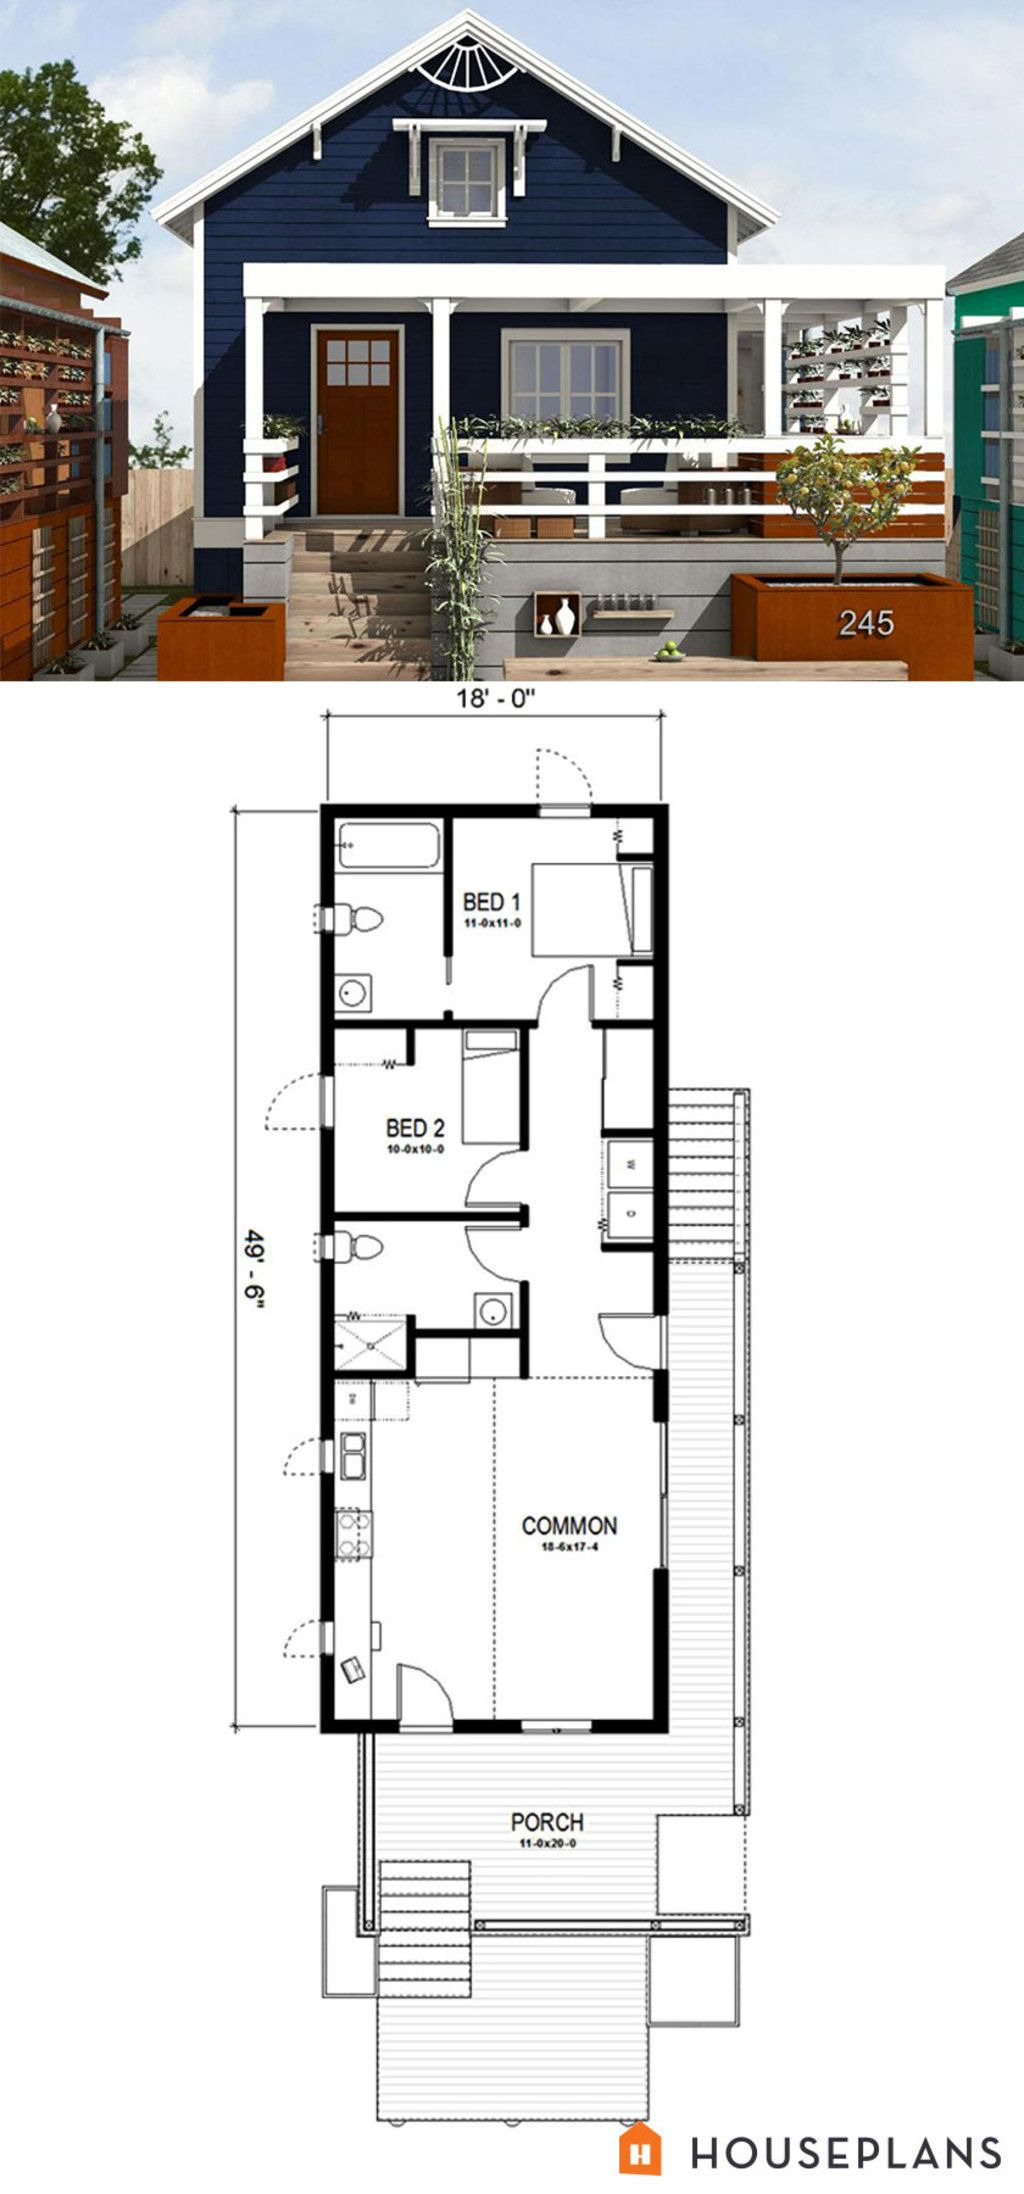 Cottage Style House Plan Beautiful Cottage Style House Plan 2 Beds 2 Baths 891 Sq Ft Plan